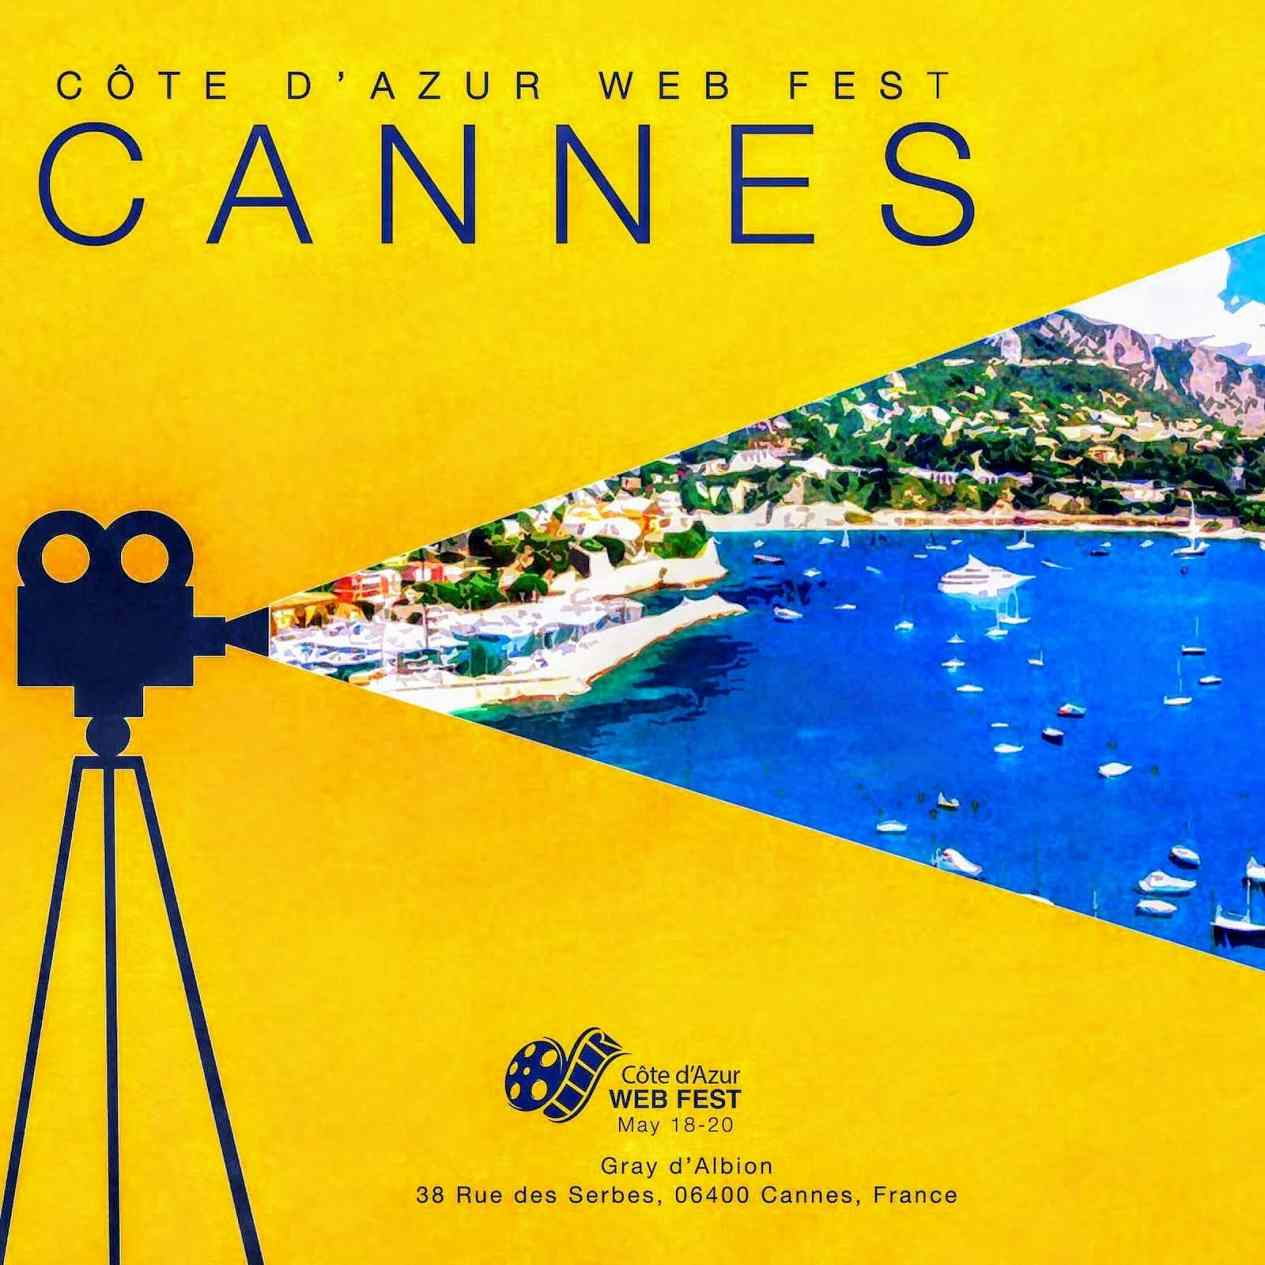 Cote d'Azur Webfest will debut at the 72nd Cannes Film Festival at the Gray d'Albion, Cannes